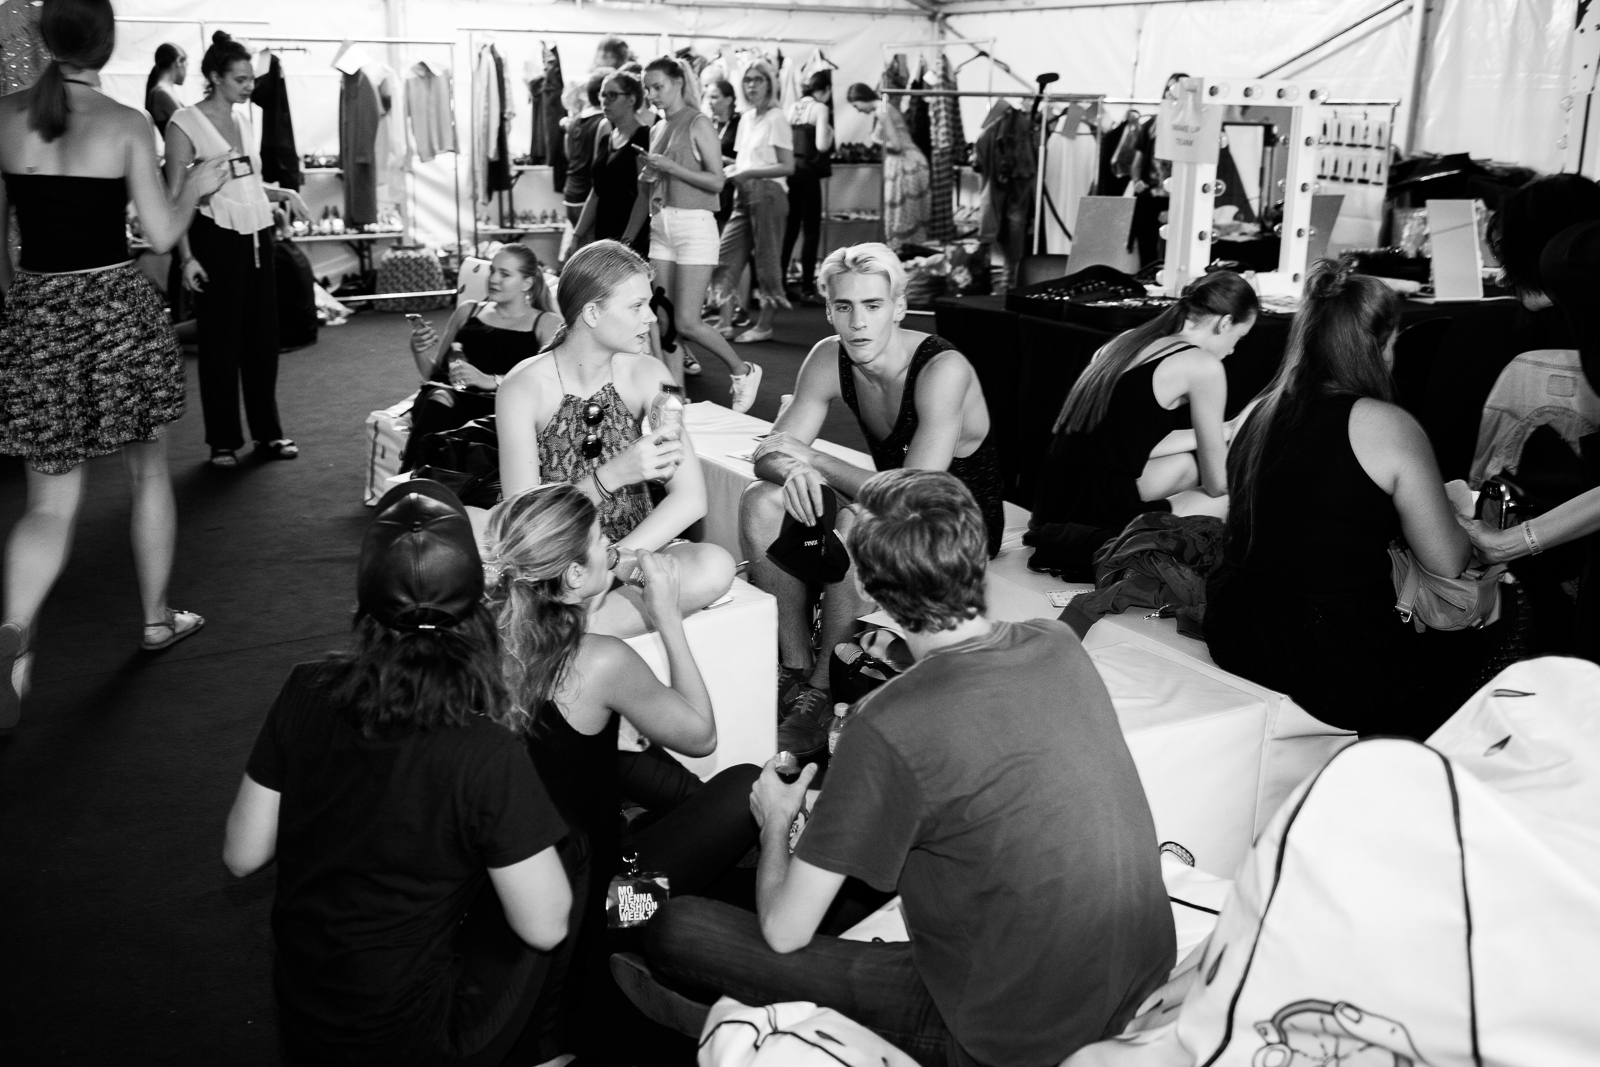 Vienna Fashion Week 2016 Opening Show Backstage Pictures